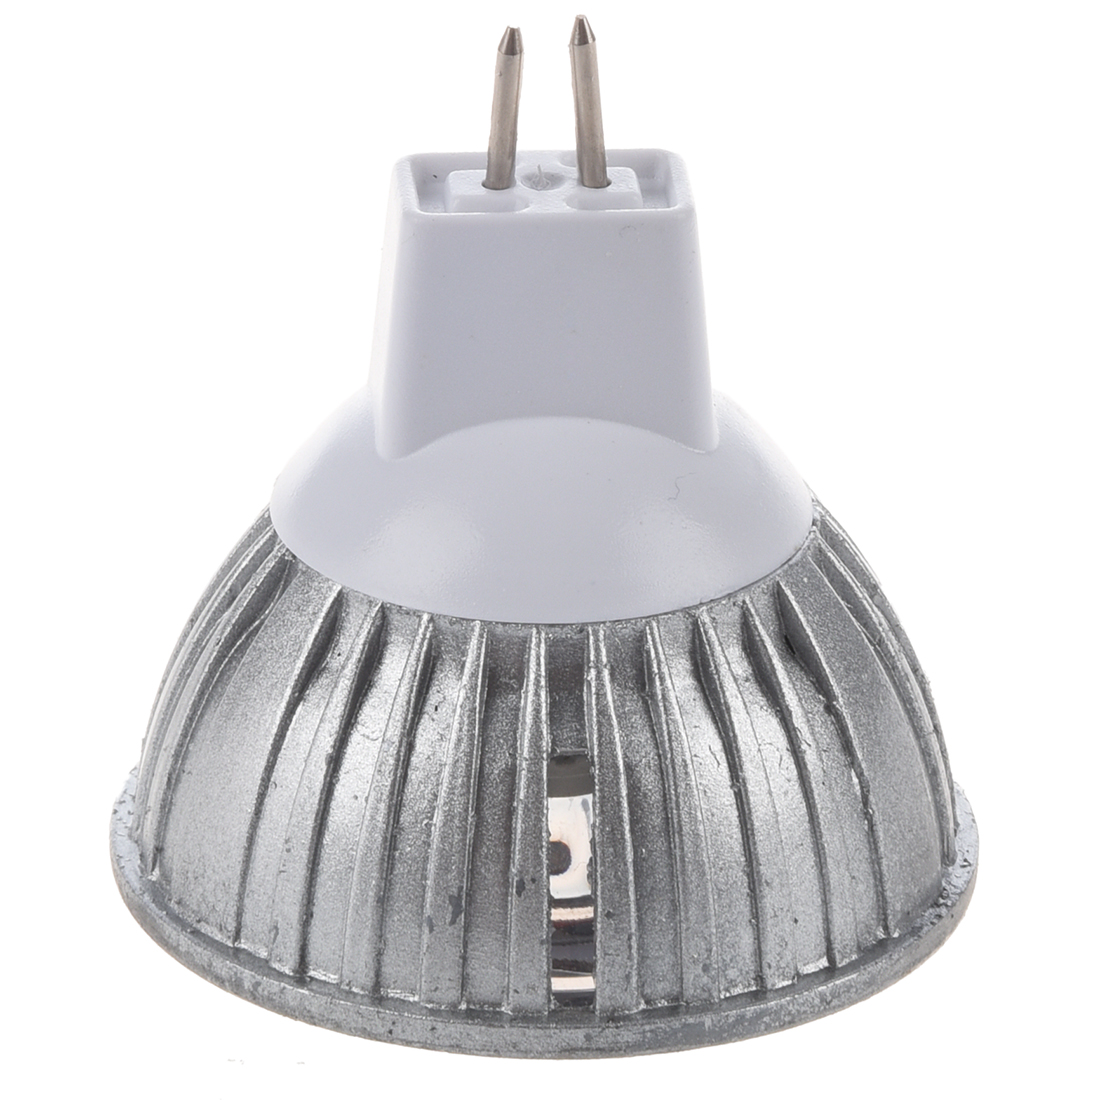 20w Led Halogen: MR16 3x1 Watt LED Spot Light 20W White For Track Light